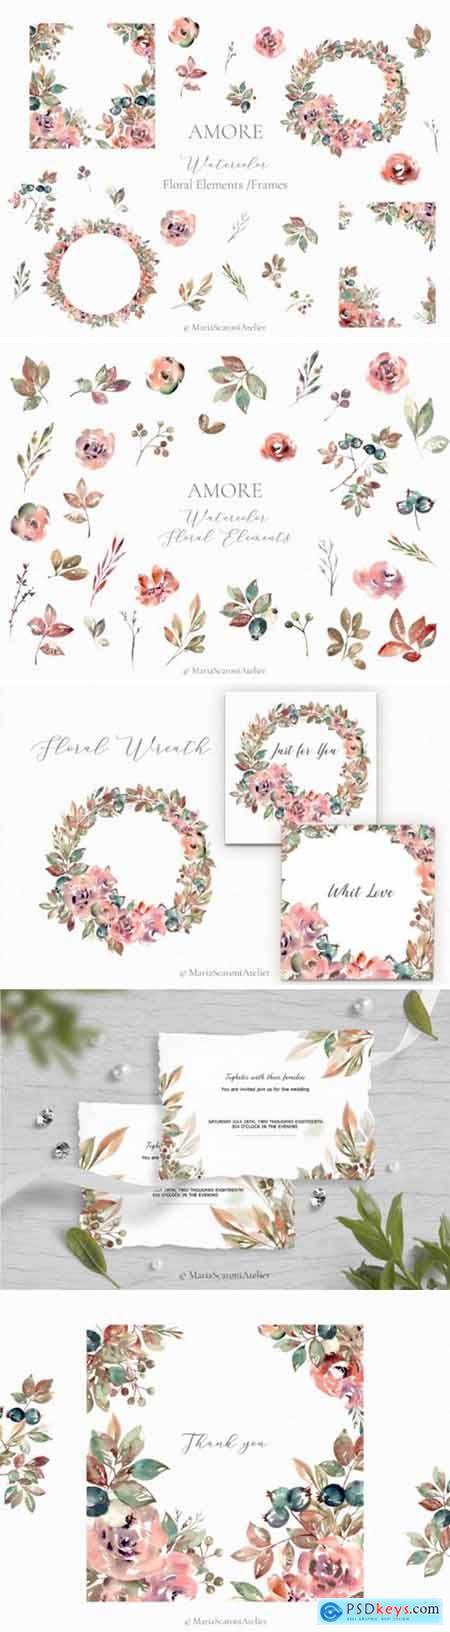 Amore Watercolor Floral Elements 3783535